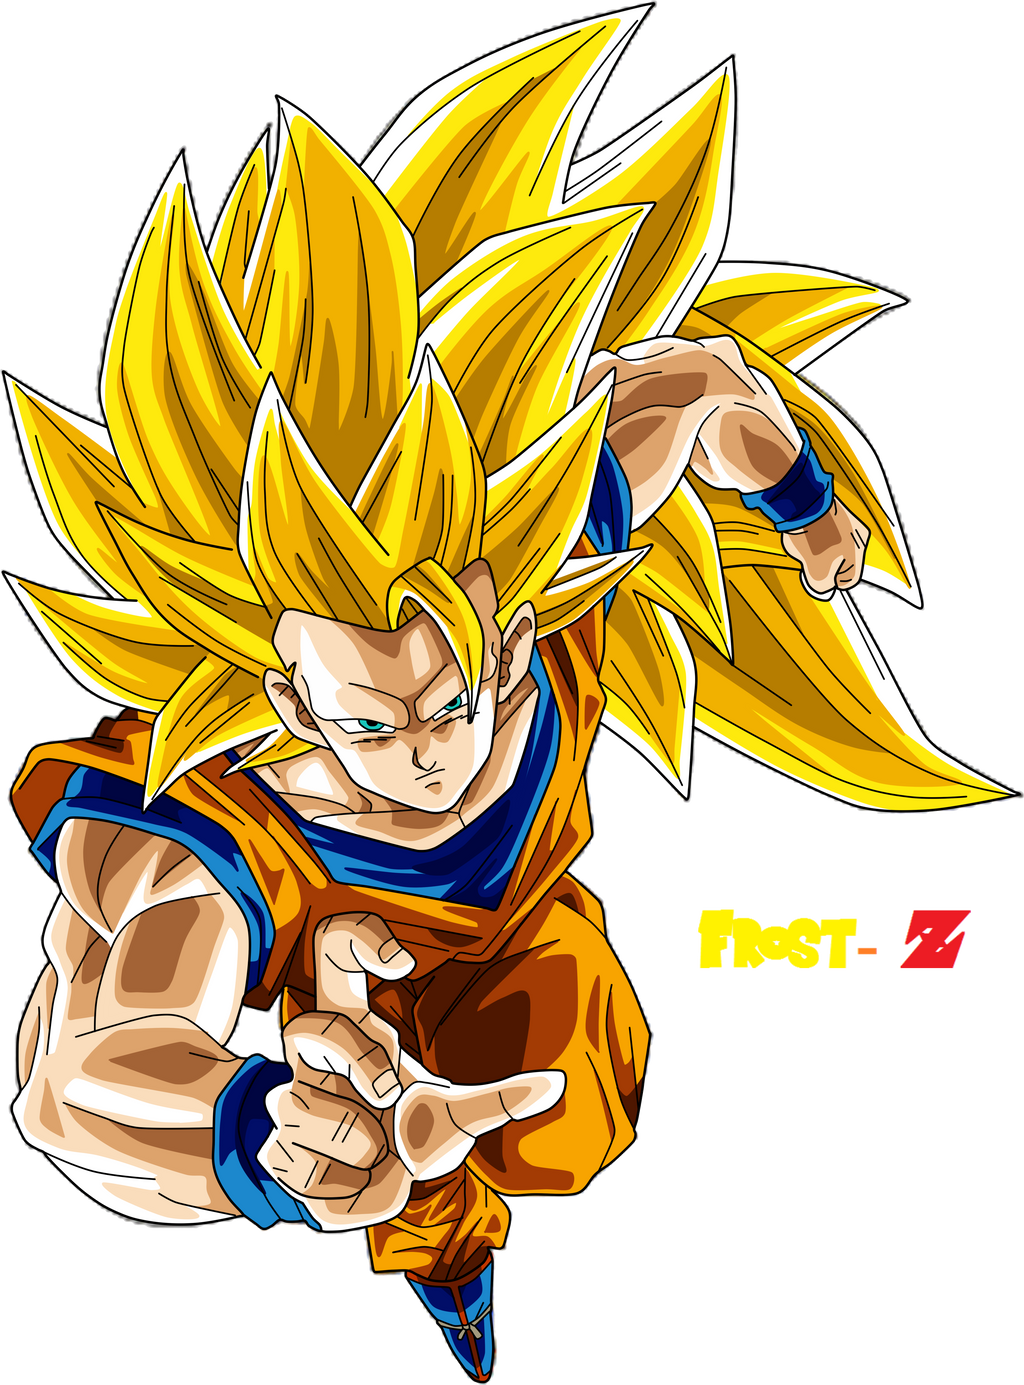 Goku super saiyan 3 by chronofz on deviantart - Sangoku super sayen 6 ...